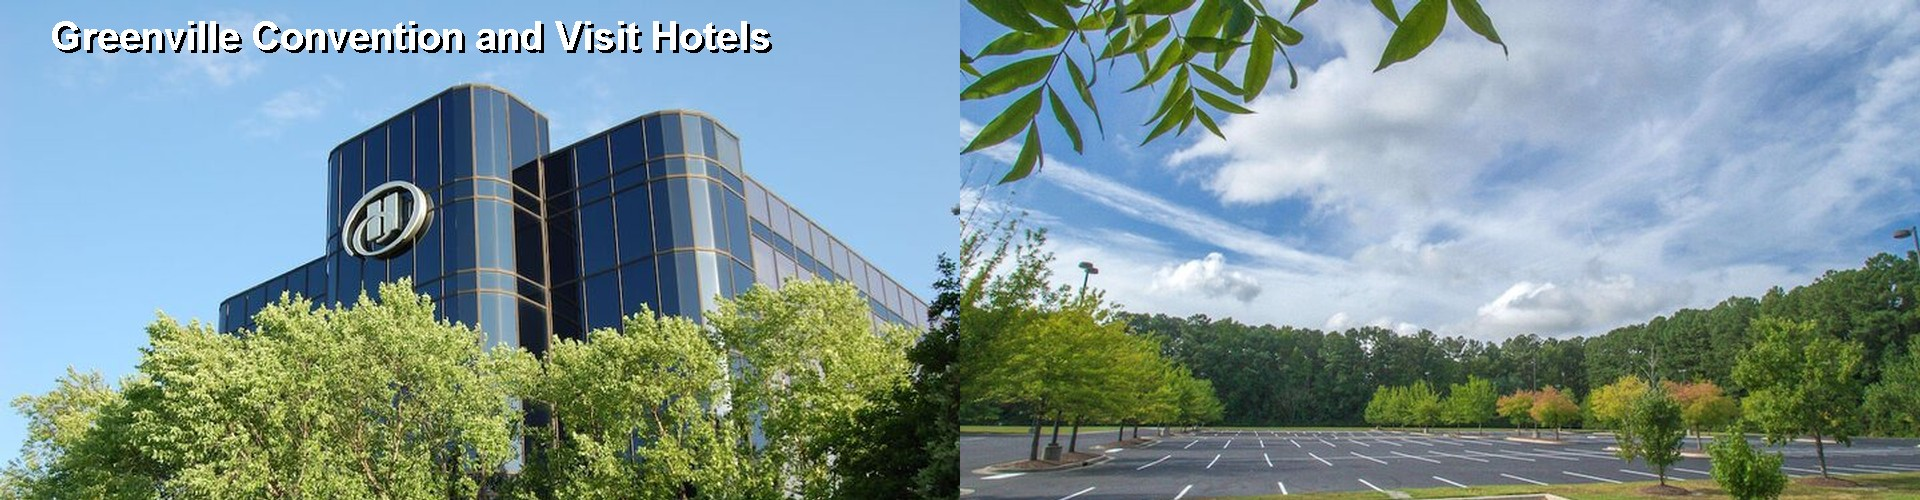 5 Best Hotels near Greenville Convention and Visit